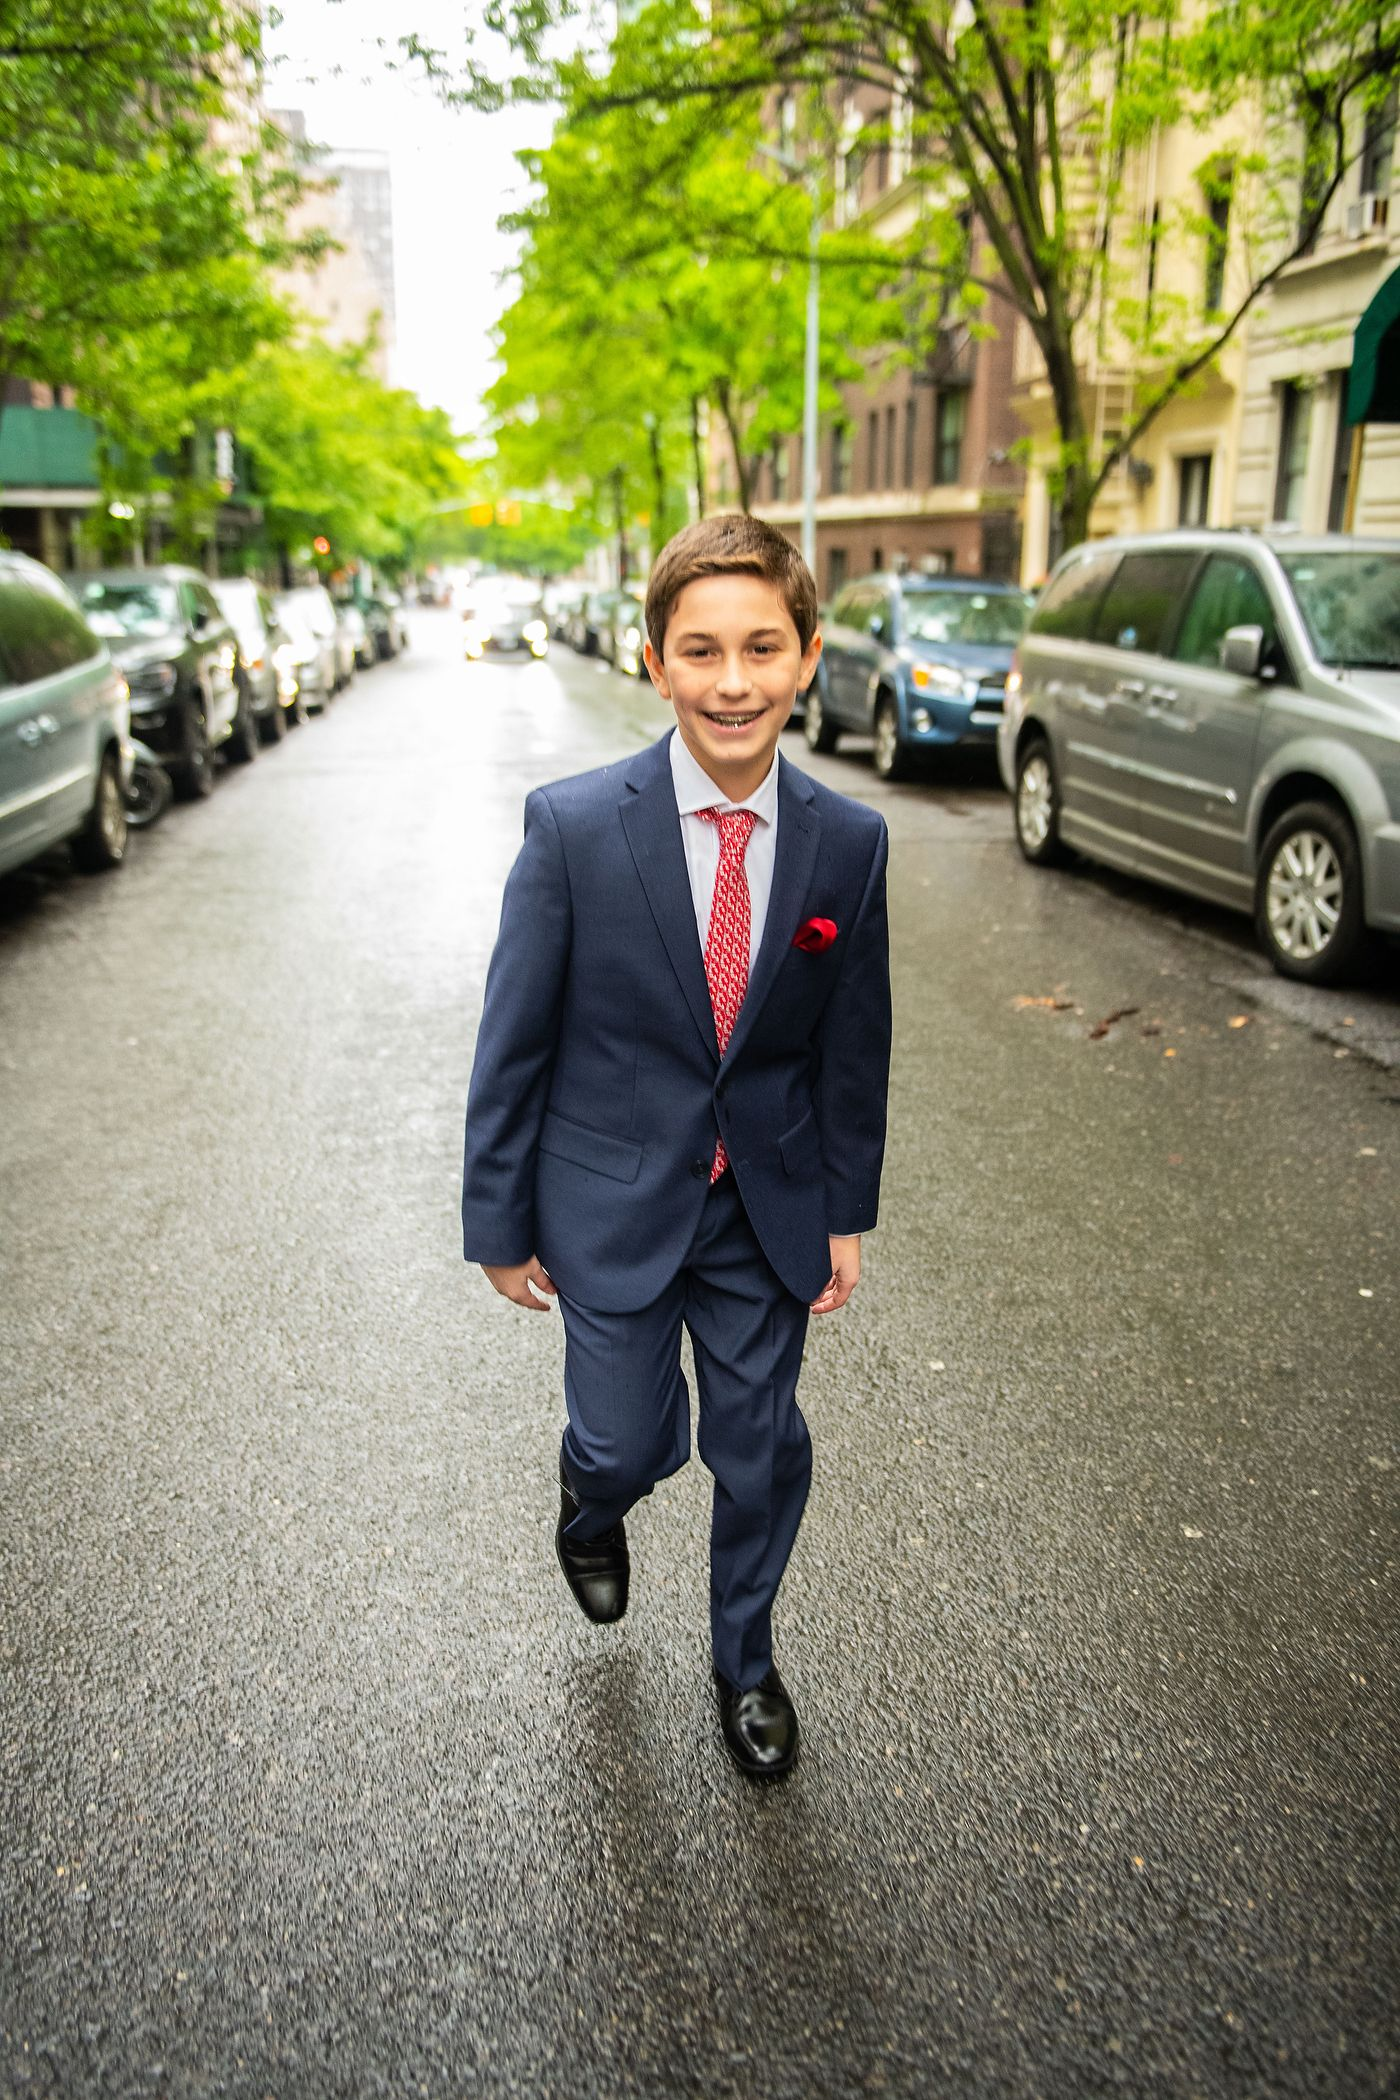 Manhattan Bar Mitzvah Street Portrait